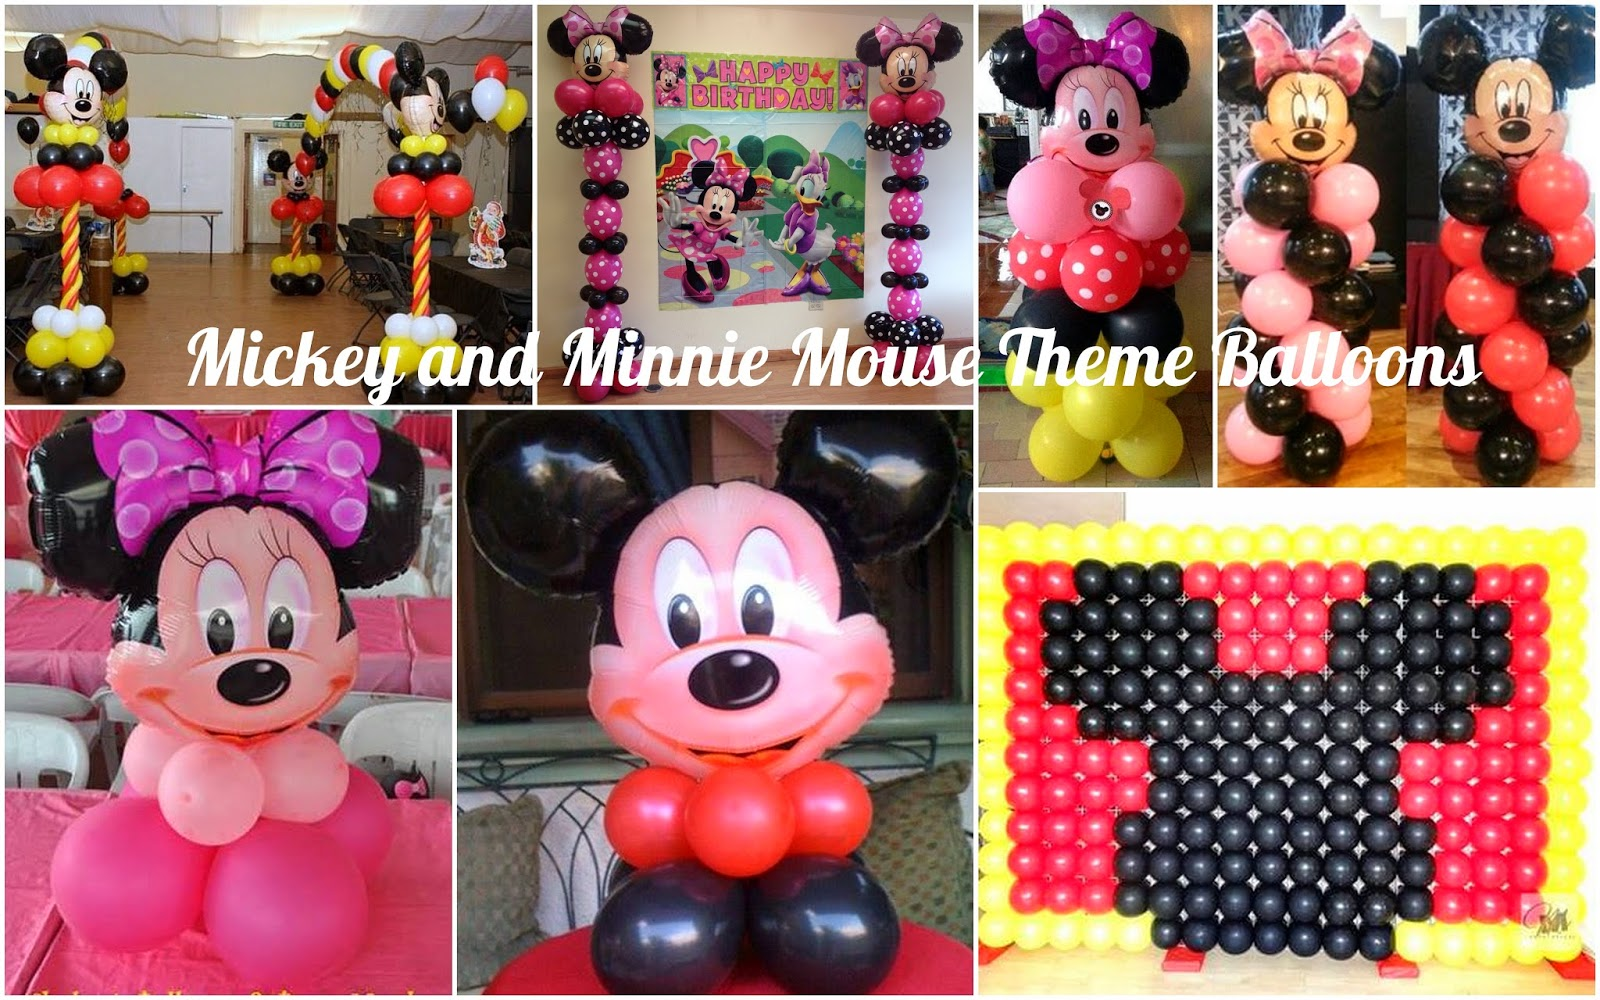 Mickey and Minnie Mouse Theme Birthday Party Athena Miels Balloons